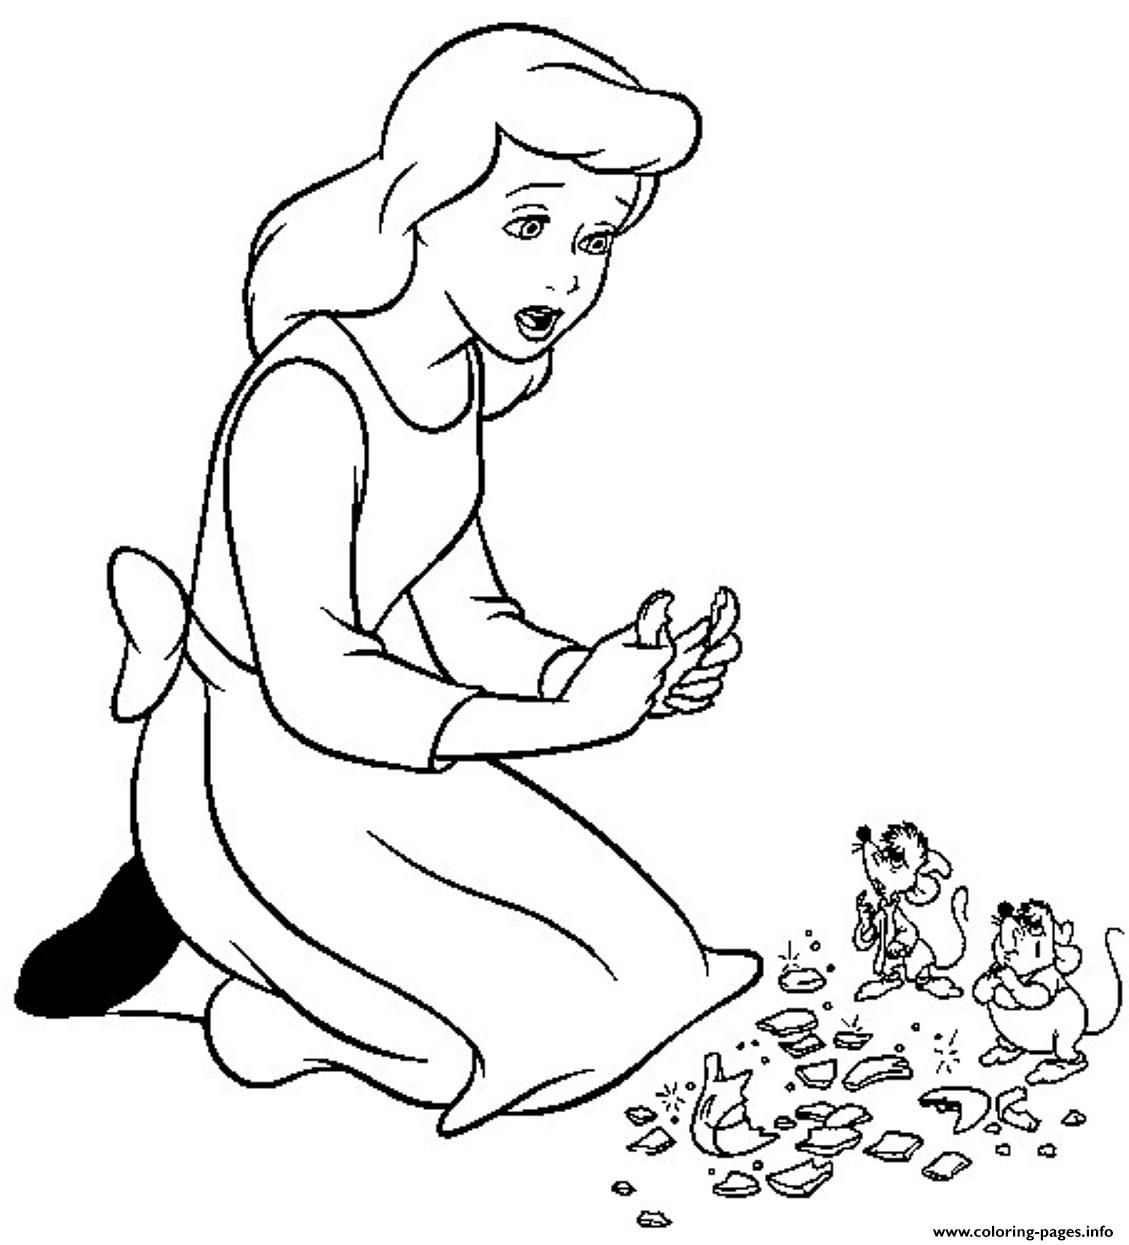 Colouring in pages cinderella - Colouring In Pages Cinderella 80